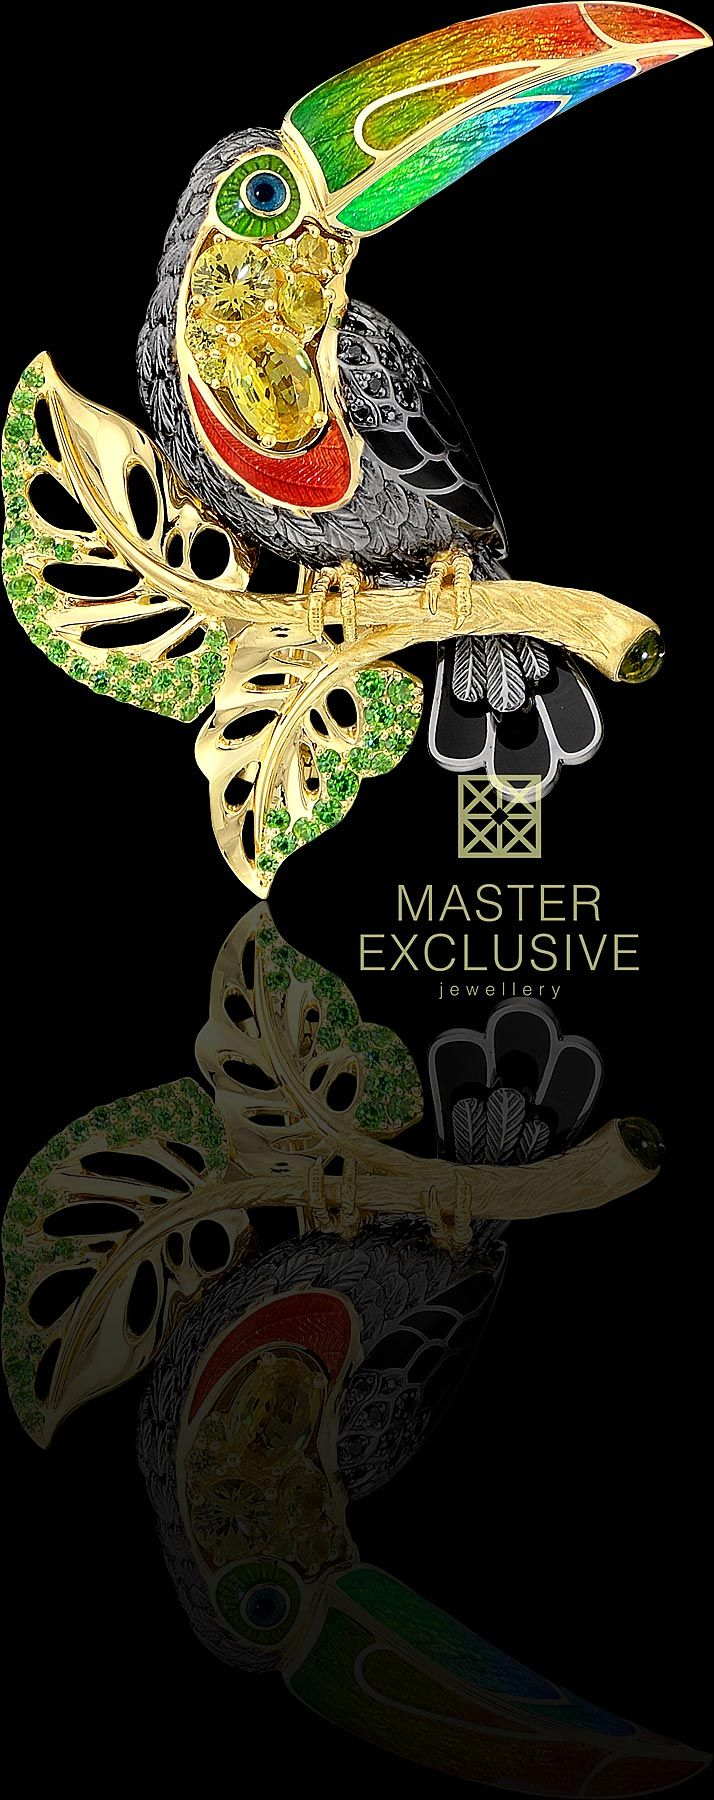 18K yellow gold, yellow diamonds, black diamonds, yellow sapphires, green tourmaline, demantoids, enamel.